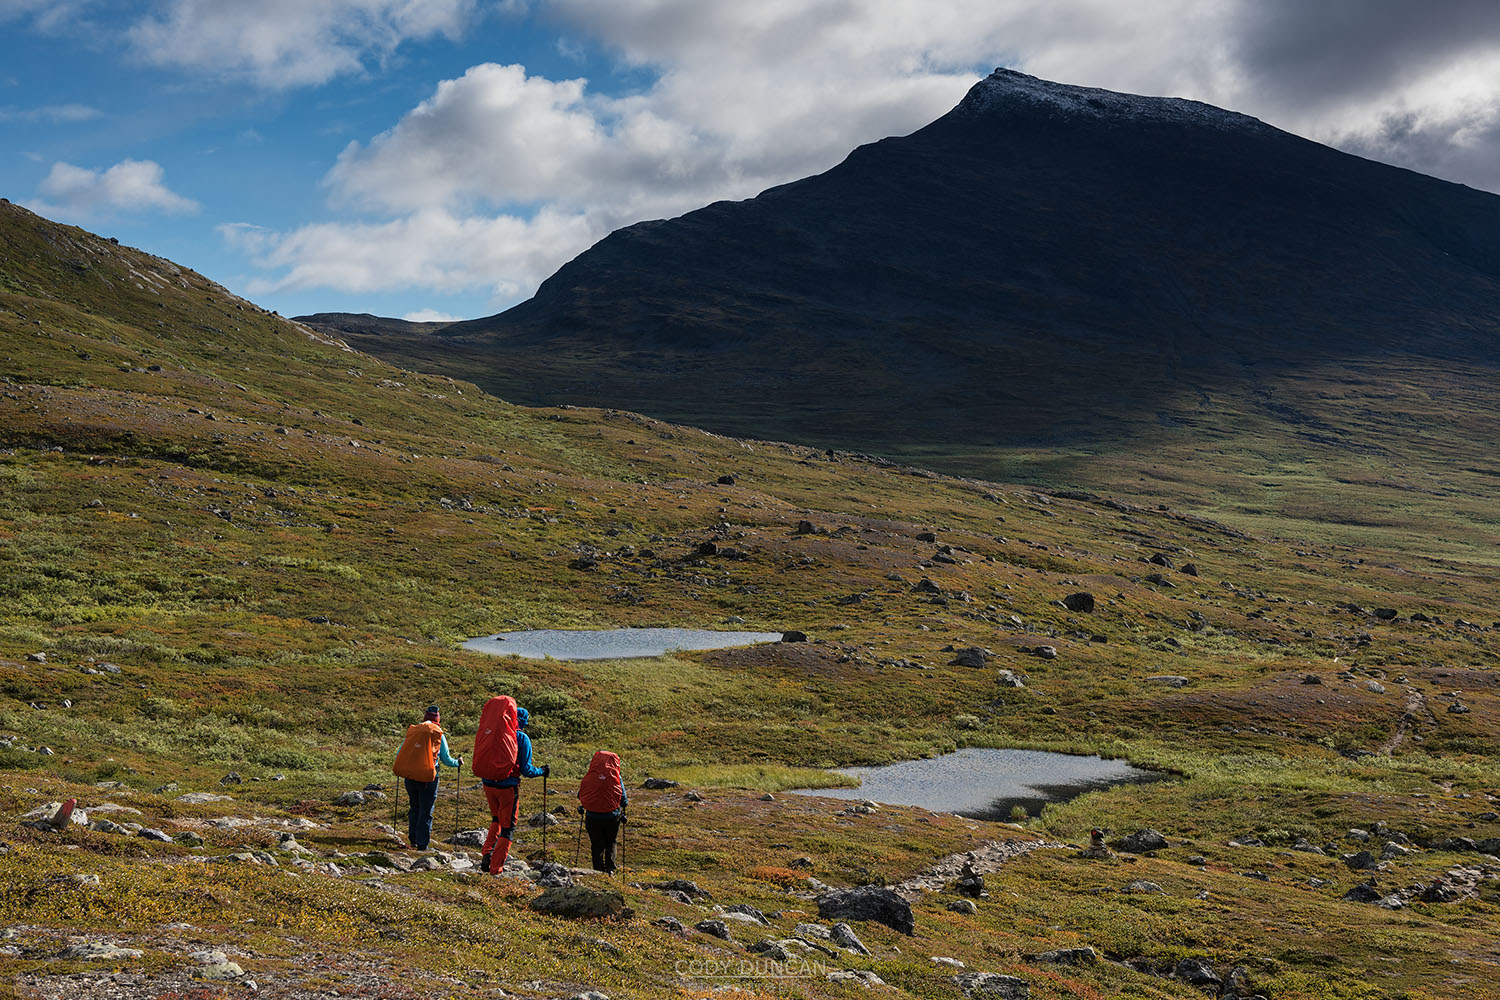 Kungsleden Trail hiking